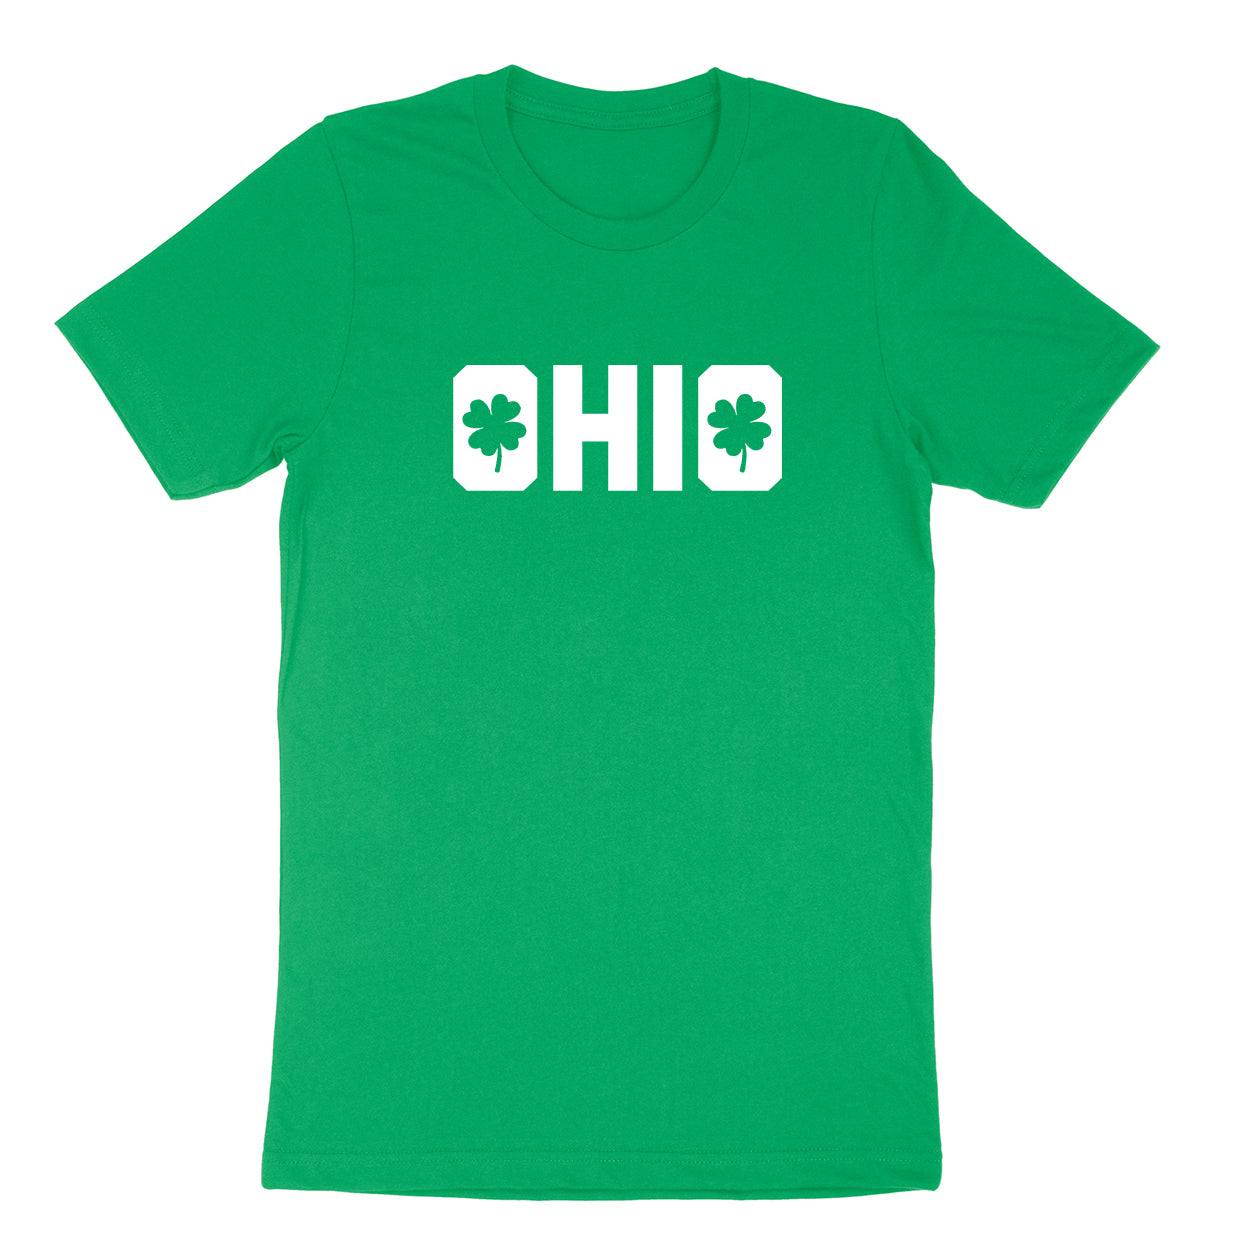 Shamrocks in Ohio Men's T-shirt - Clothe Ohio - Soft Ohio Shirts